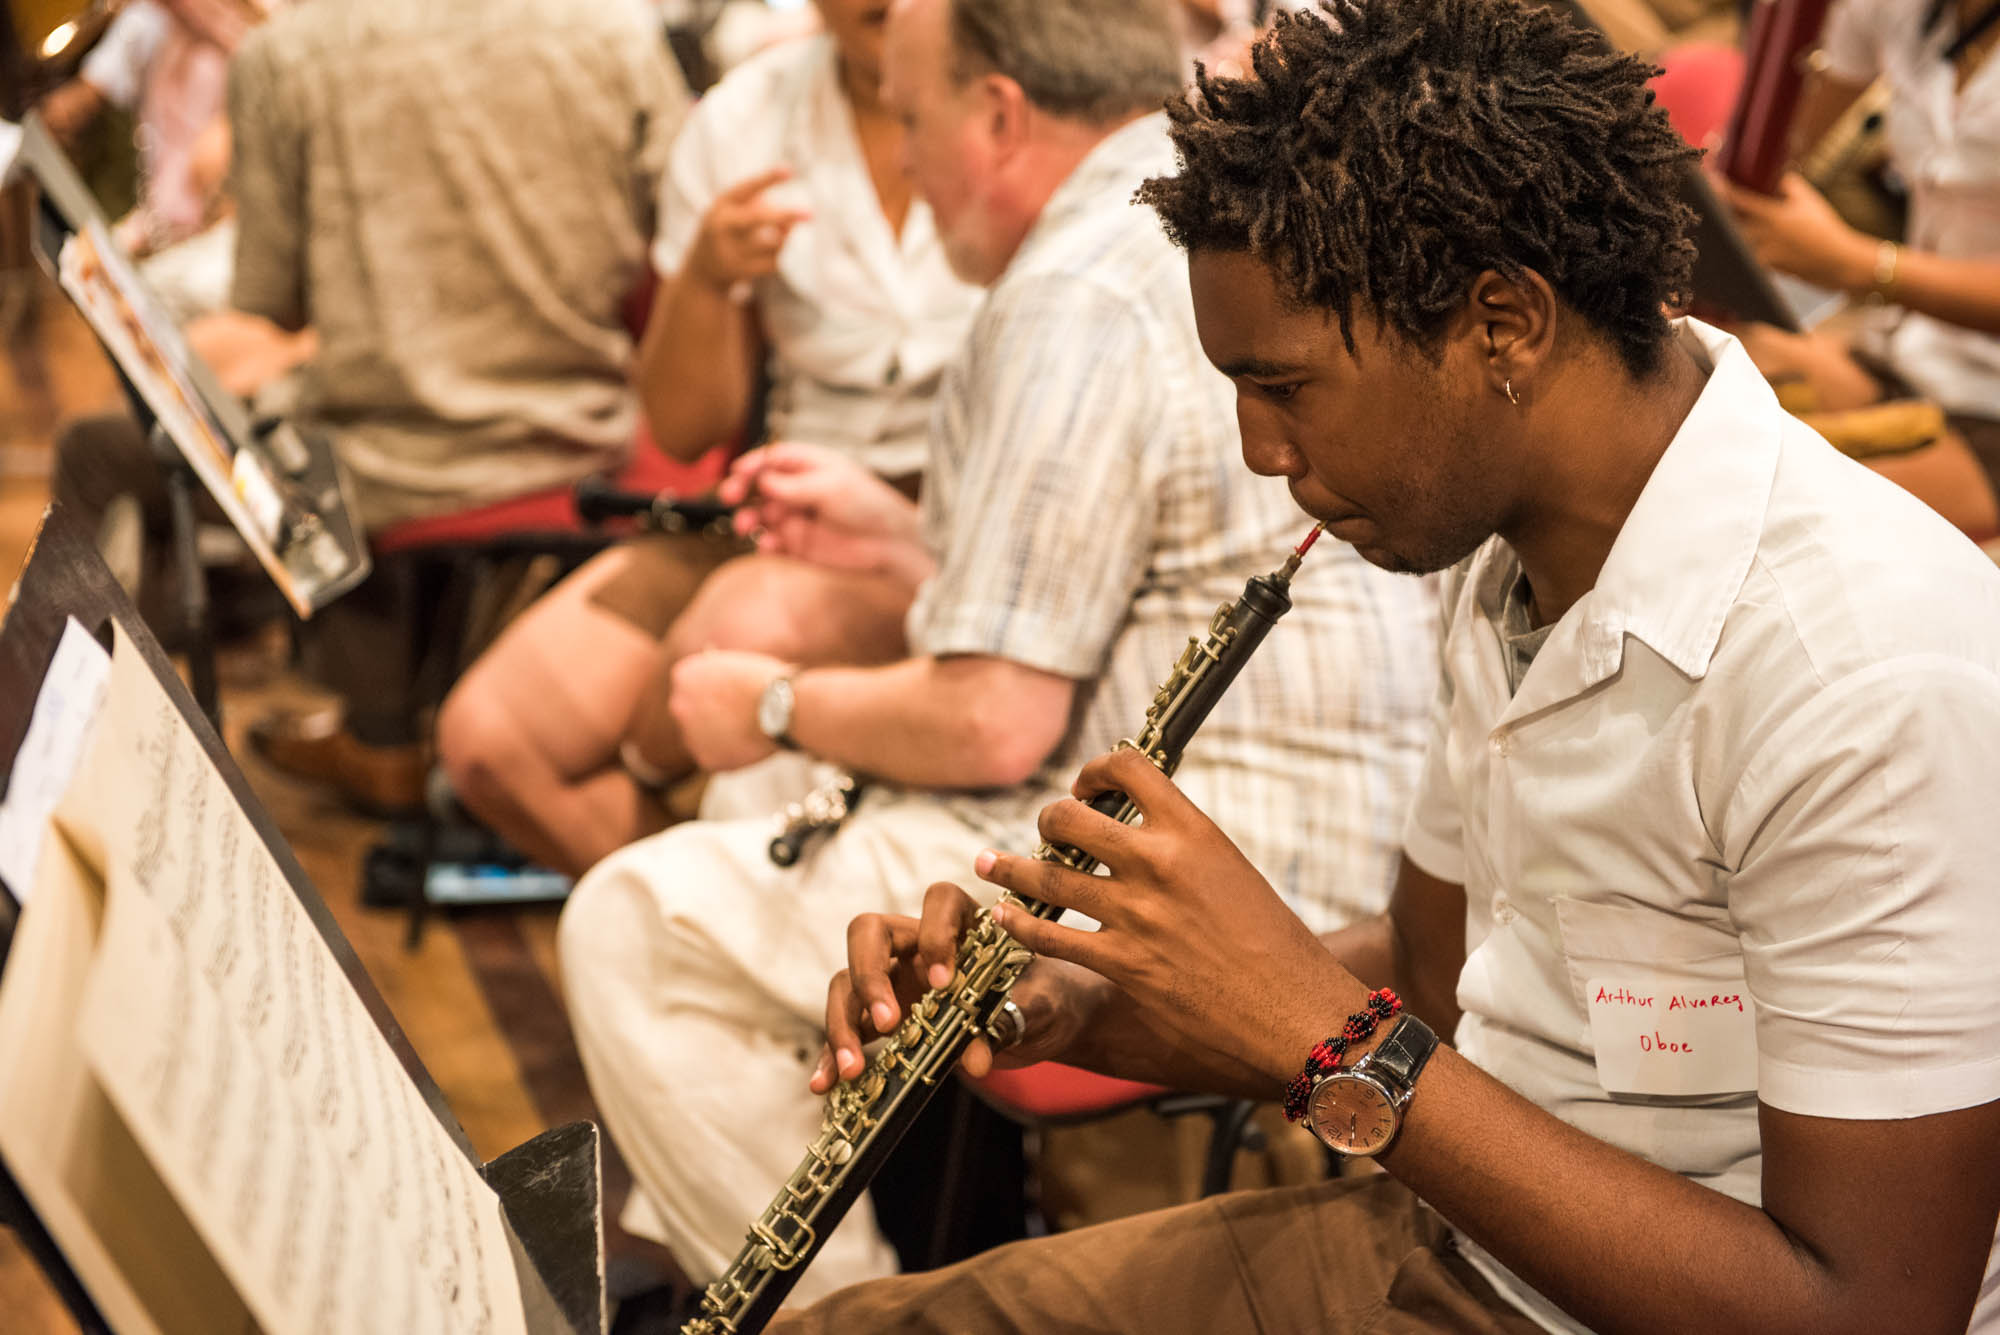 Oboist from the National Cuban Youth Symphony